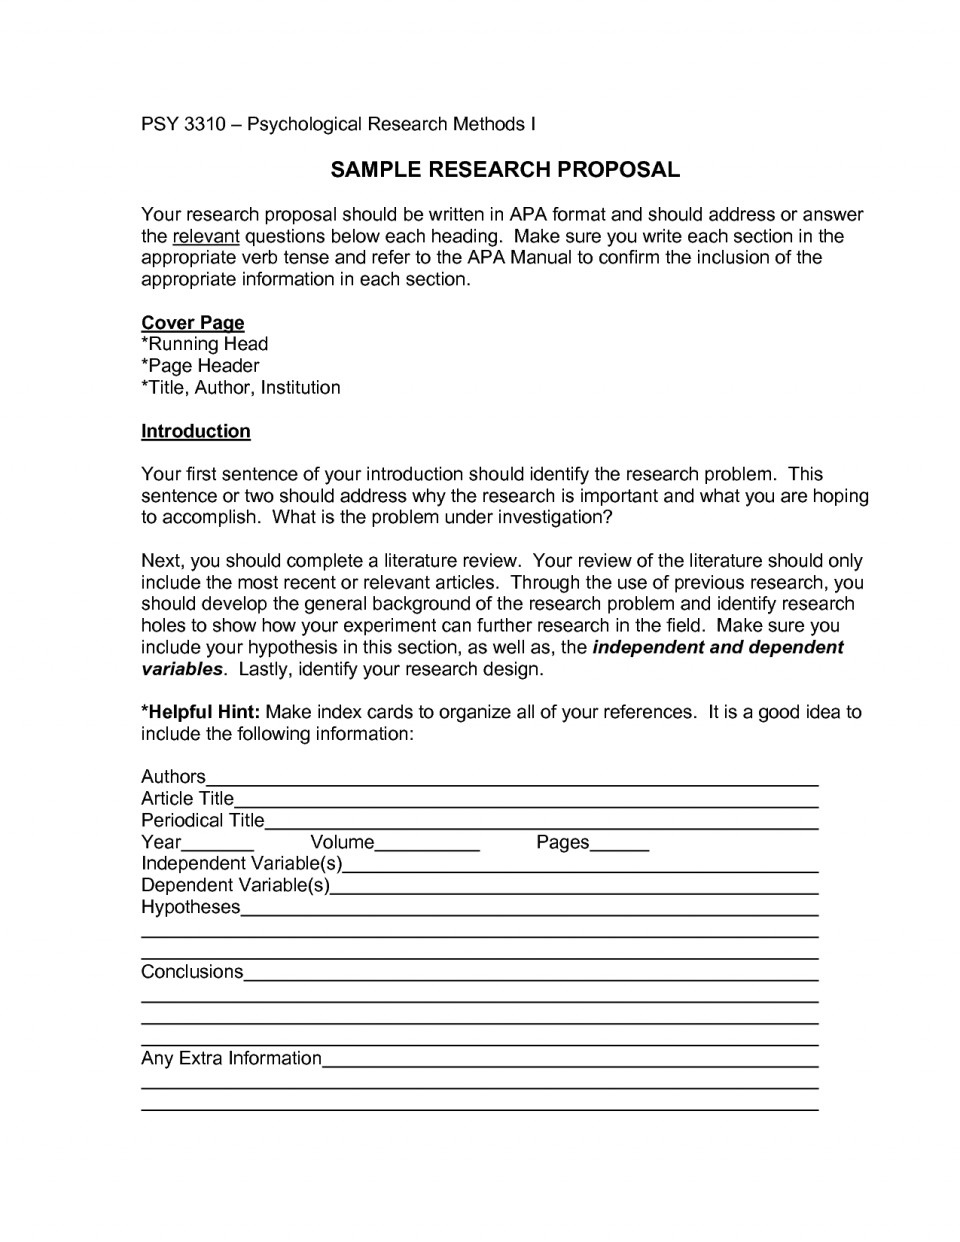 006 Apa Research Proposal Template Best Style Format With Sample Essay Writing Psychology Paper Of Beautiful Animal Testing Thesis 960